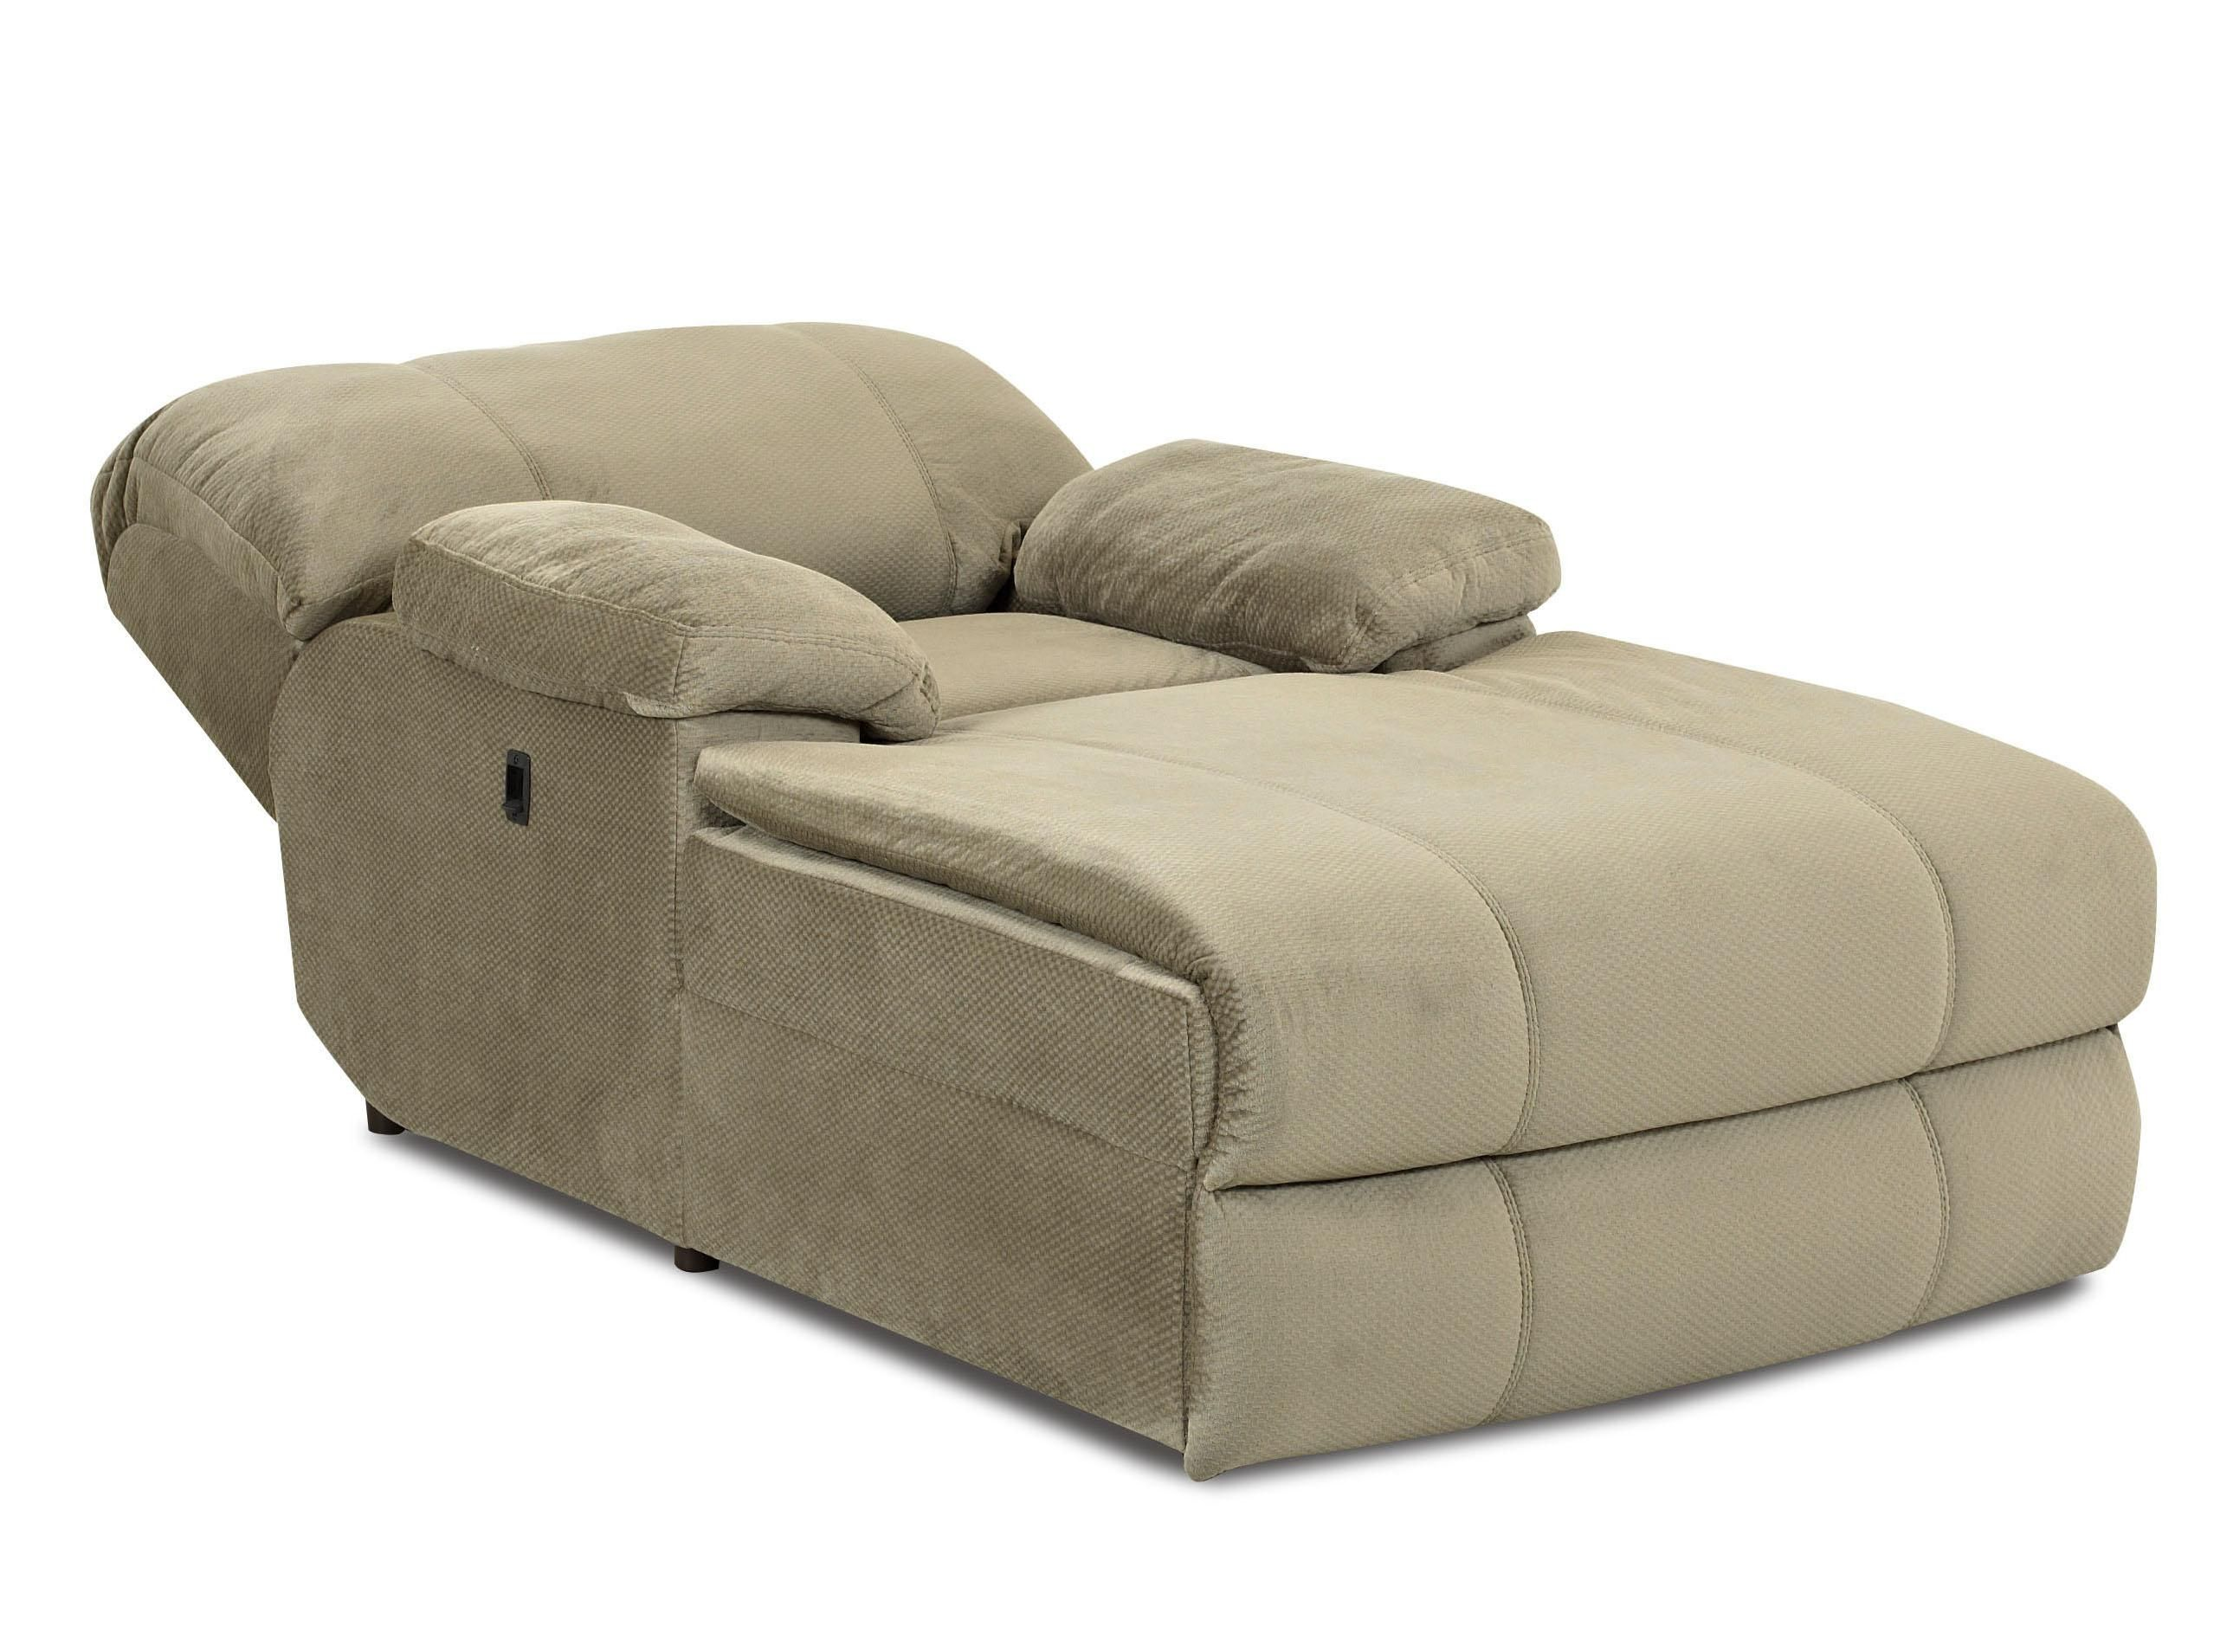 Indoor oversized chaise lounge kensington reclining for Chaise lounge bench